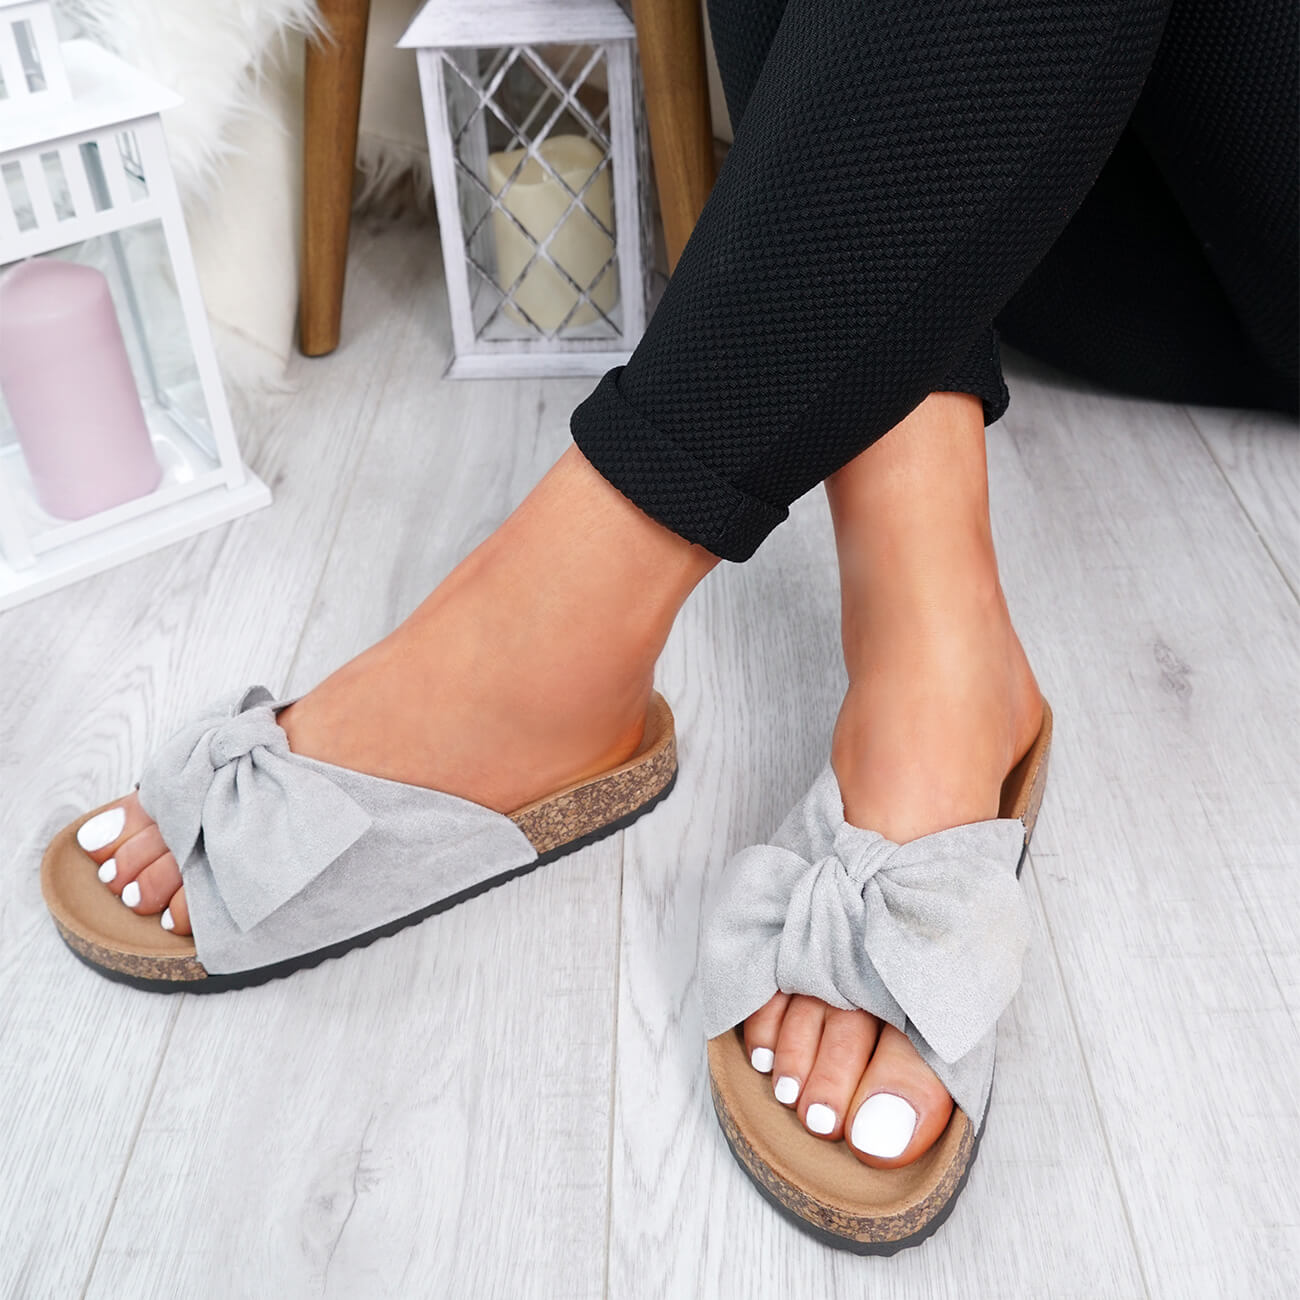 WOMENS-LADIES-SLIP-ON-FLAT-SANDALS-BOW-SLIDERS-SUMMER-CASUAL-SHOES-SIZE thumbnail 28